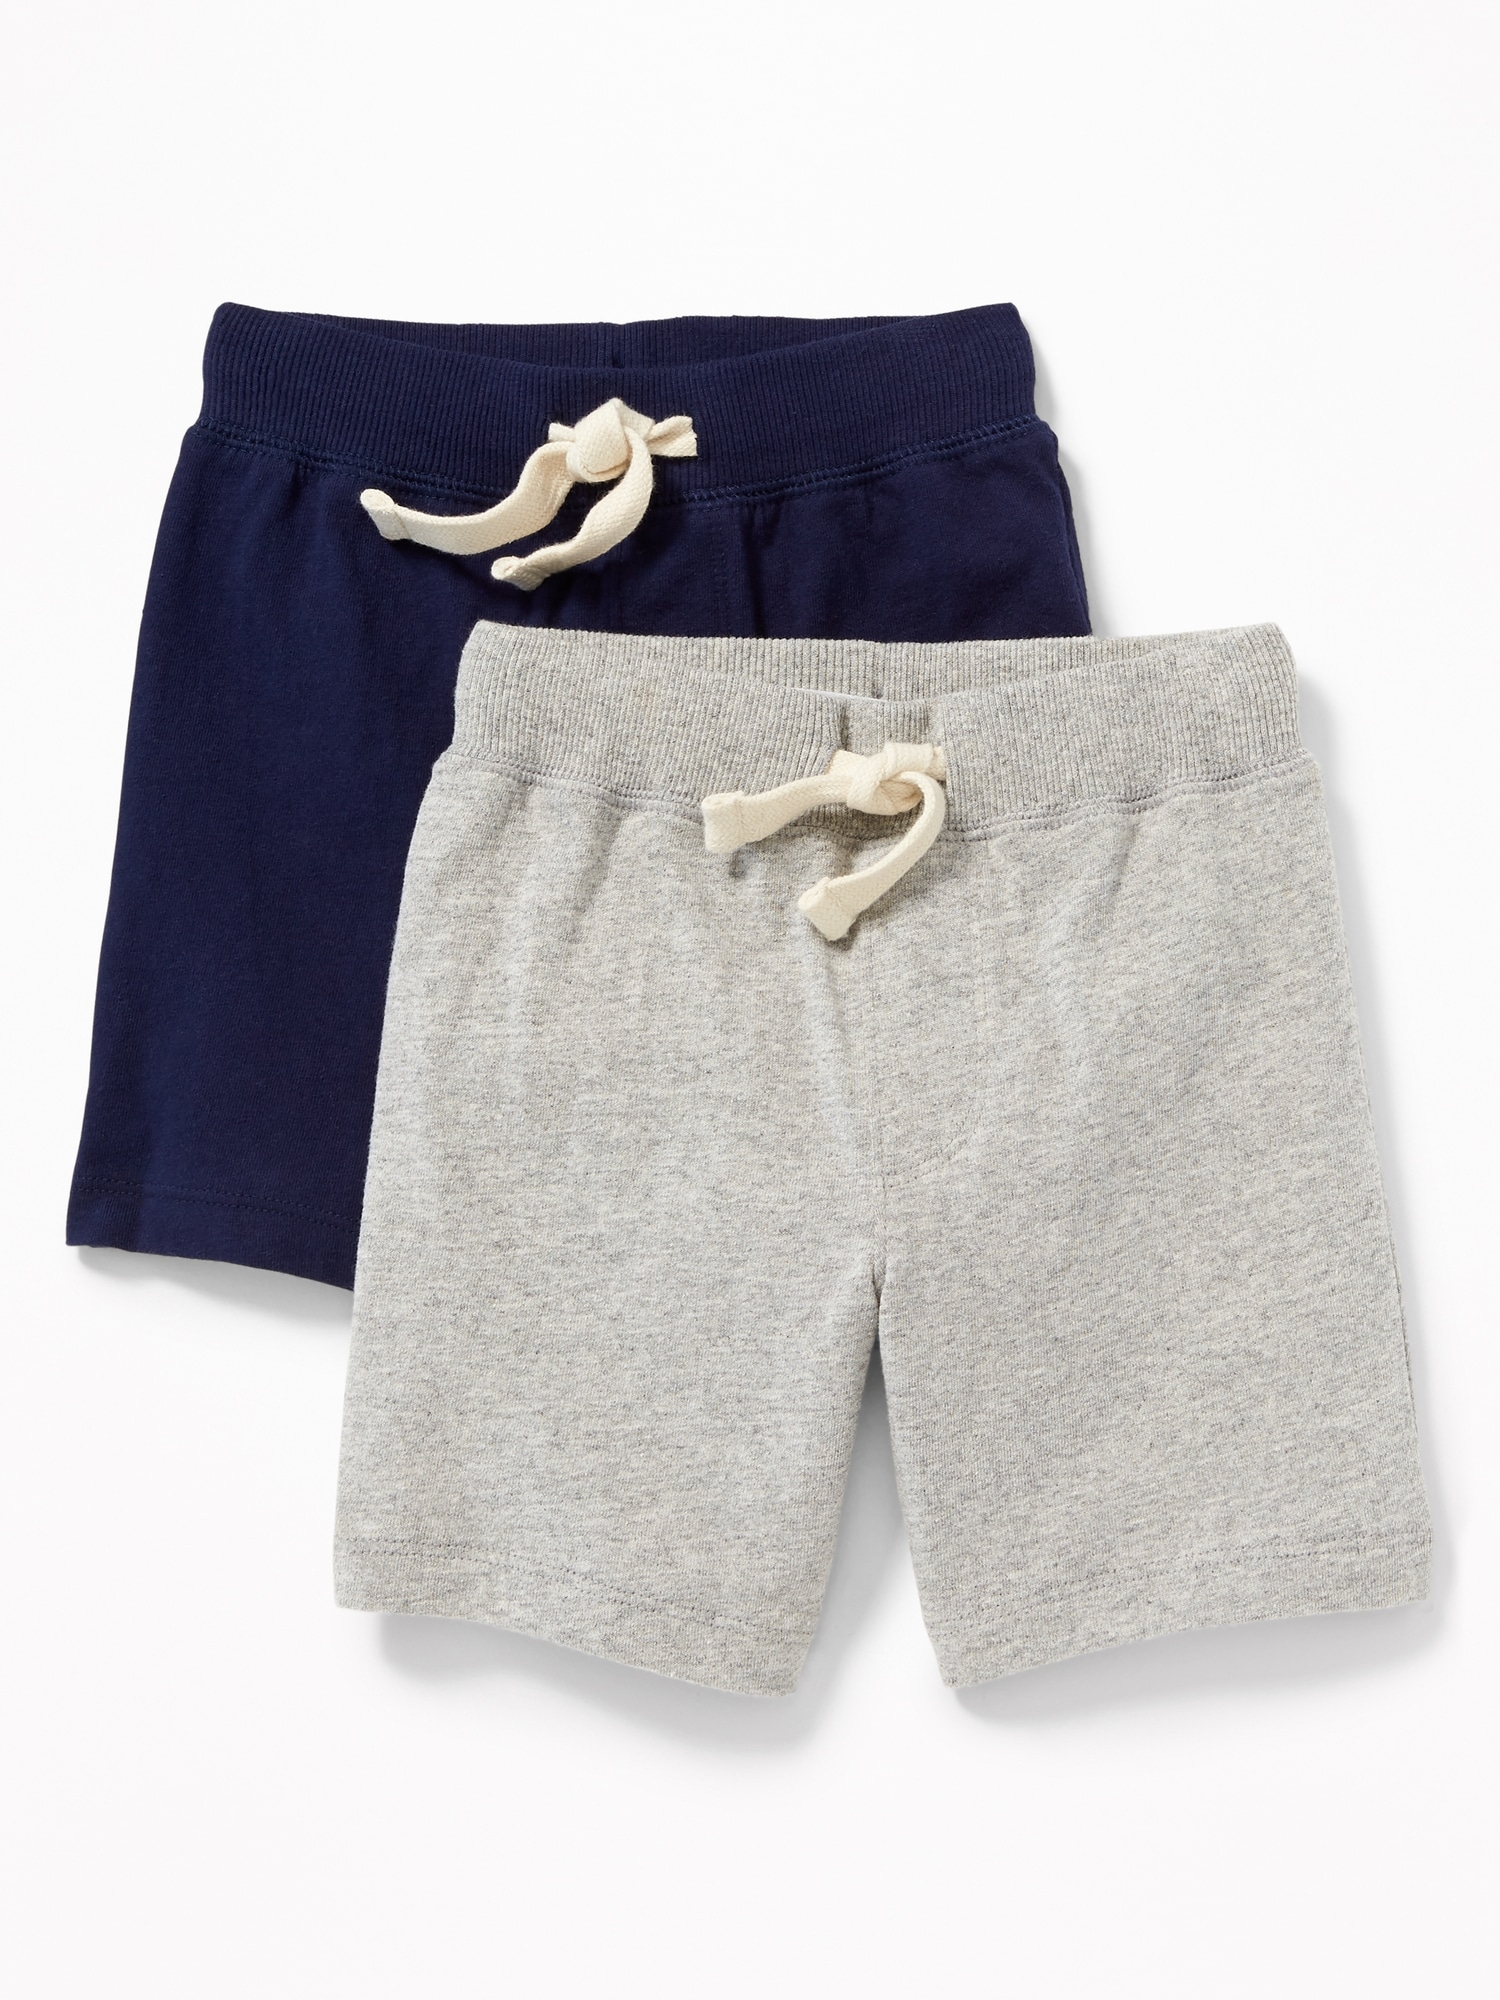 83ee9e558b Functional Drawstring Jersey Shorts 2-Pack for Toddler Boys | Old Navy